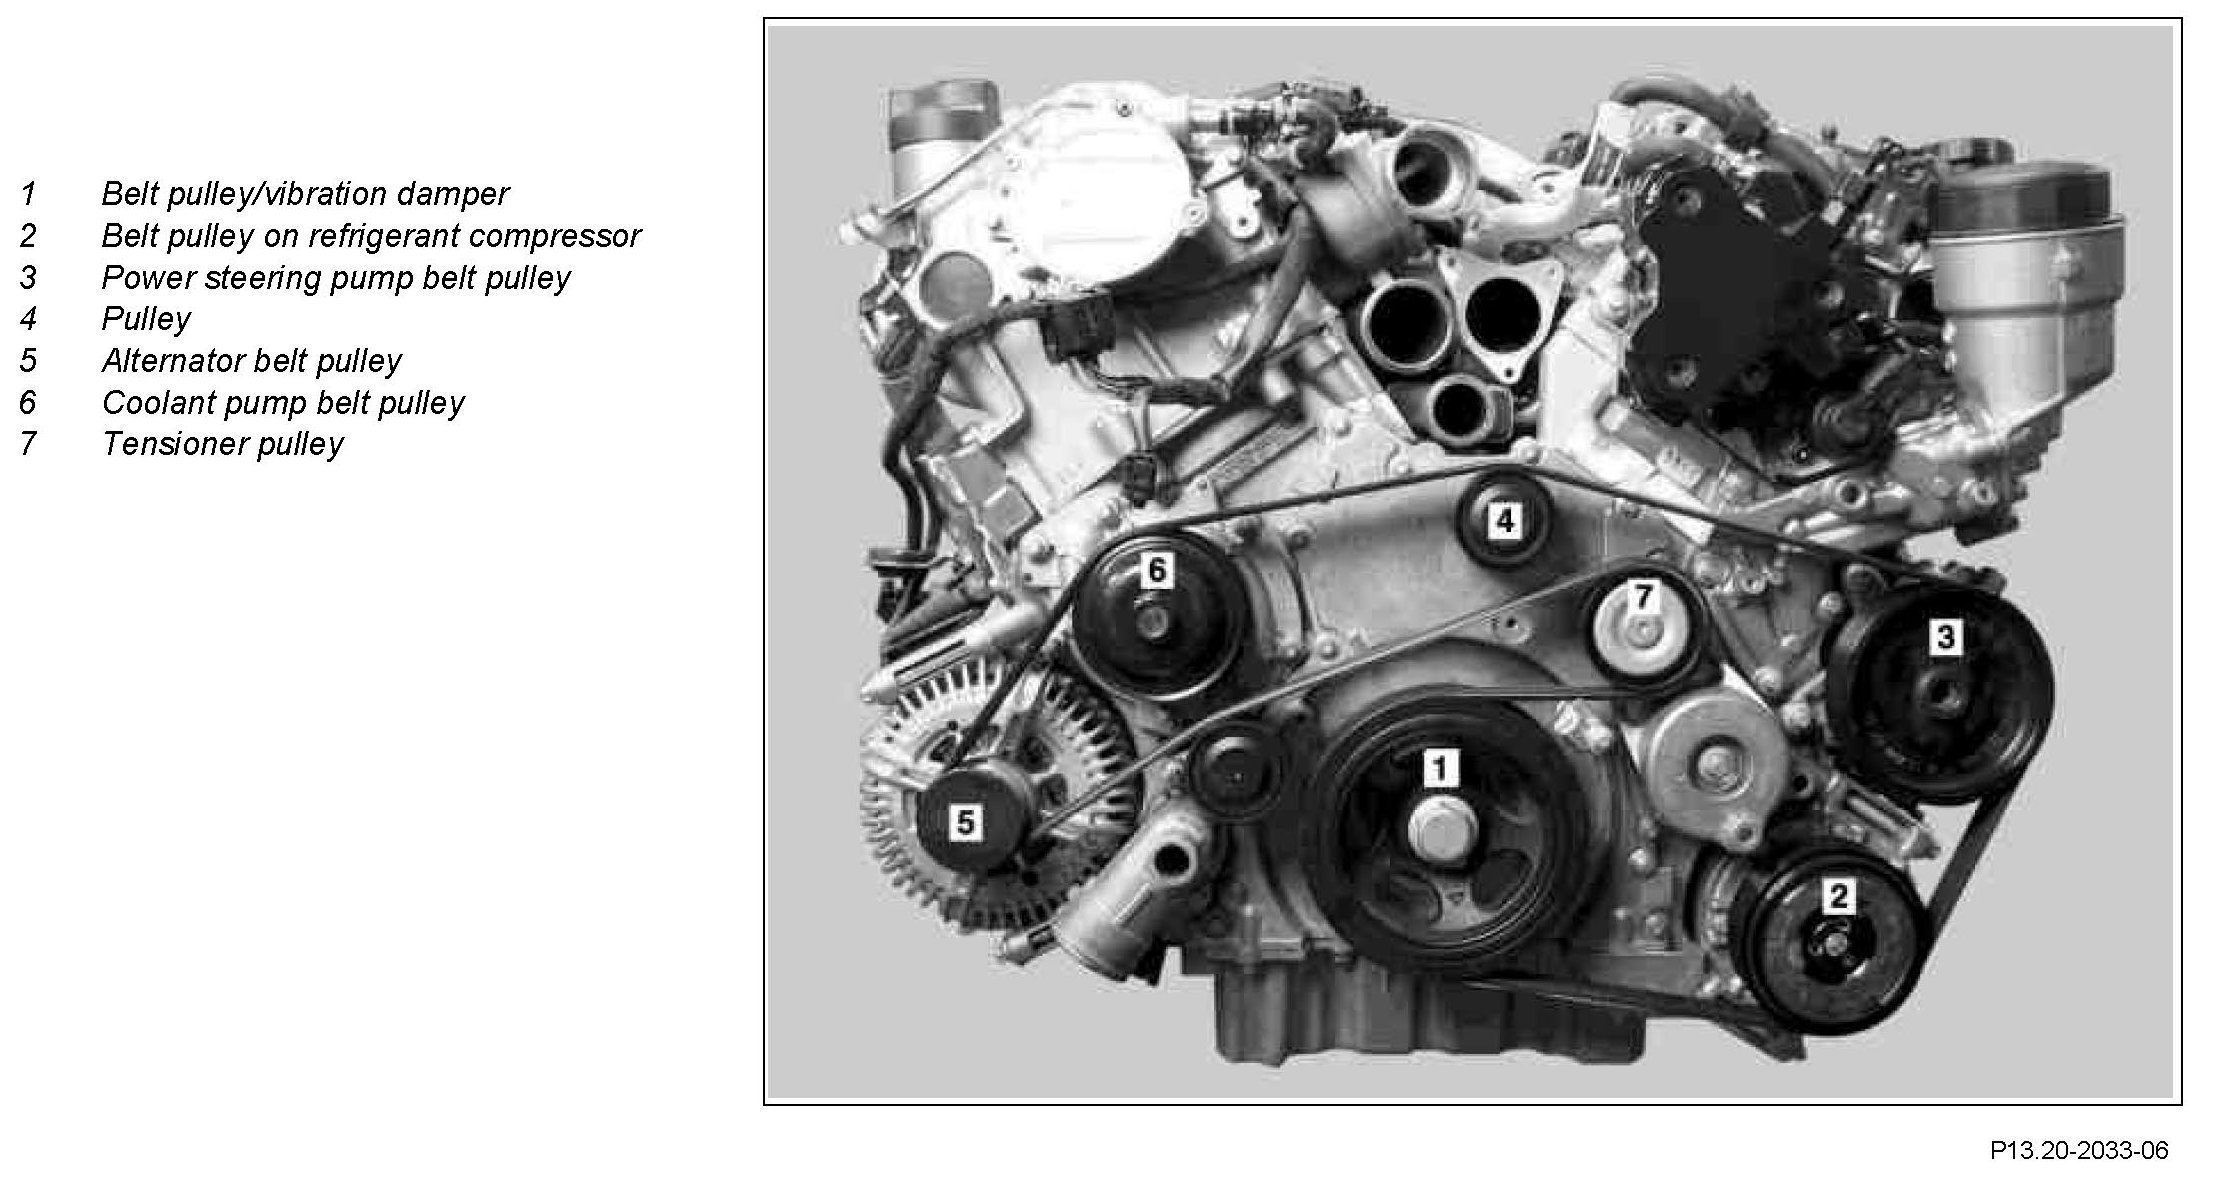 ml 350 cdi i need the belt diagram for a ml 350 cdi 2010